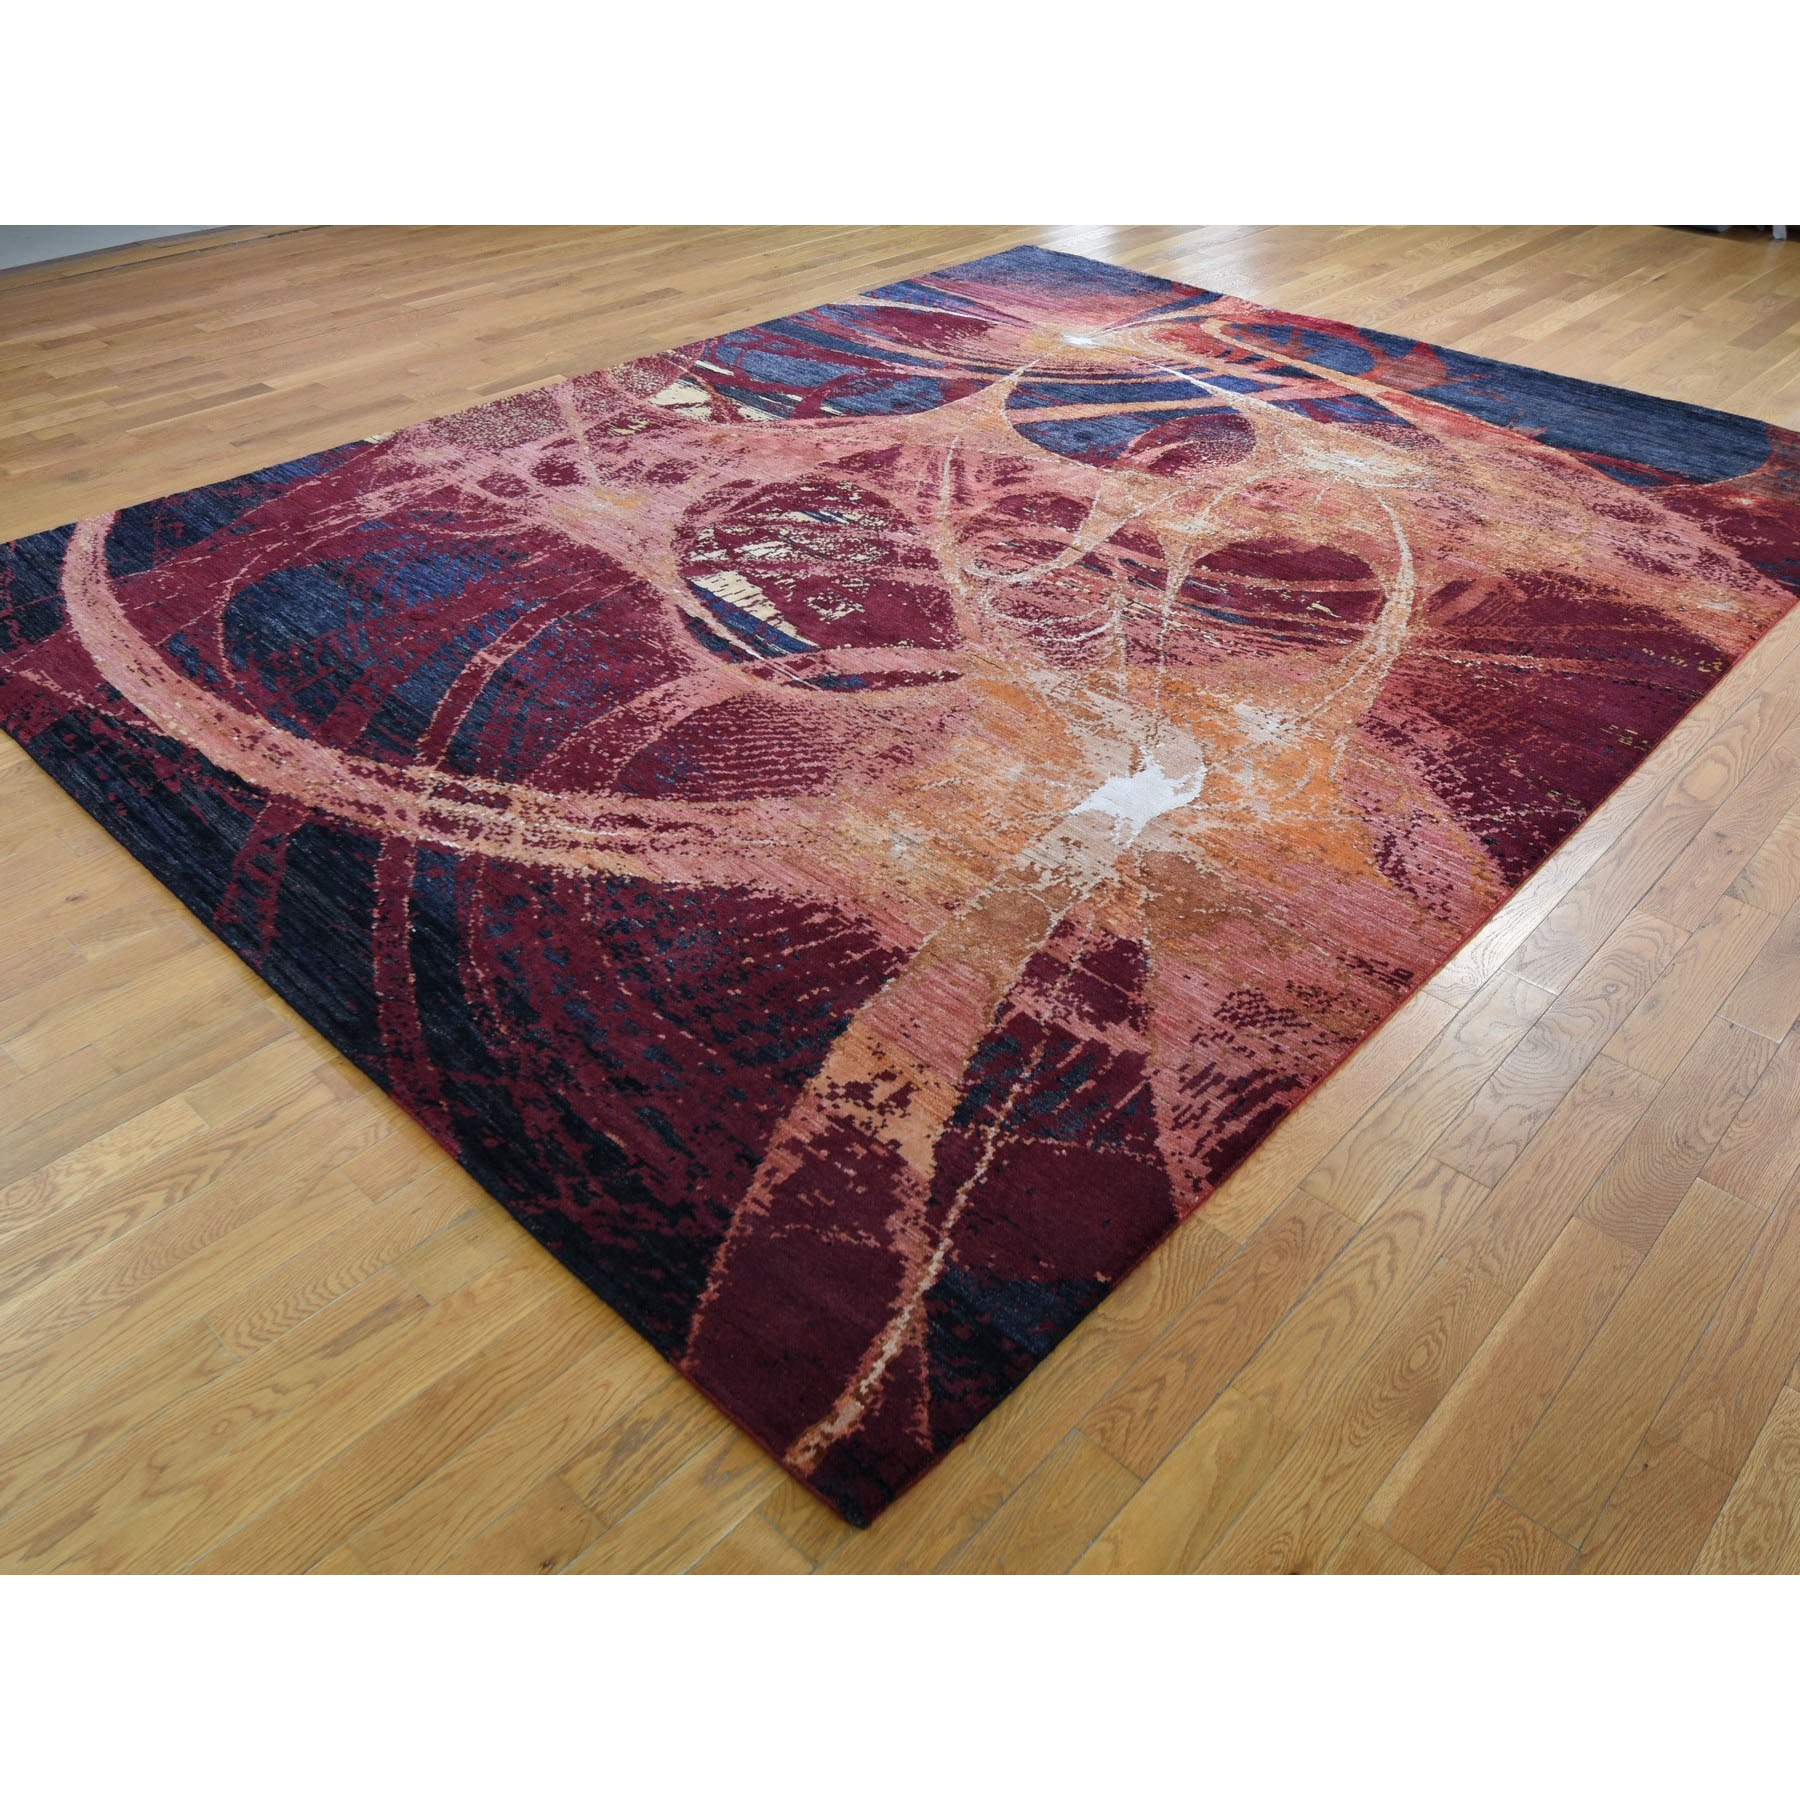 "9'2""x12' The Flamboyant Galaxy Wool And Silk Hand Knotted Oriental Rug"